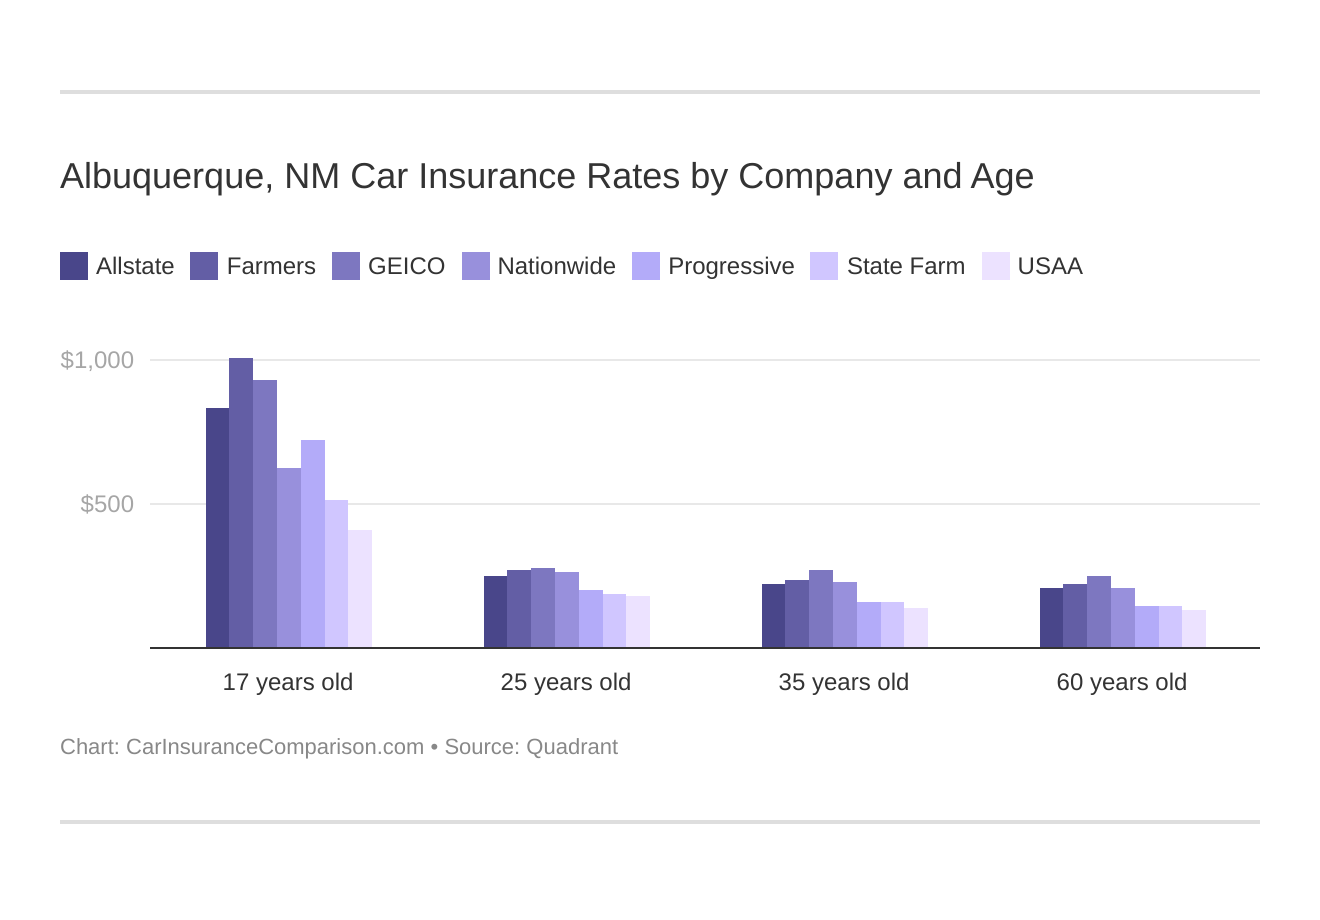 Albuquerque, NM Car Insurance Rates by Company and Age